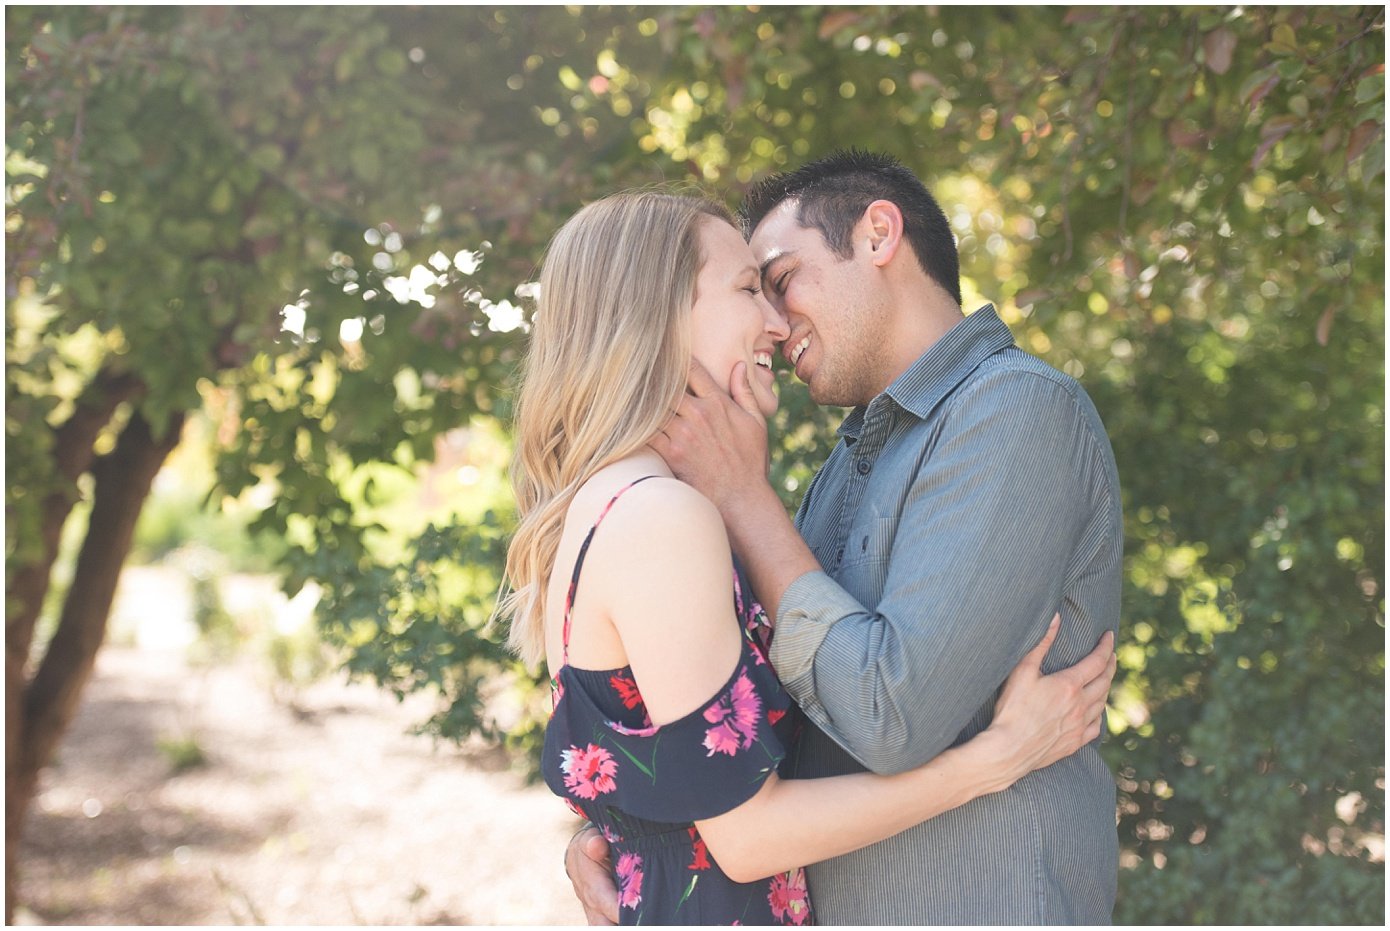 kayla kitts photography-kristi-sam-botanic-gardens-sandia-lakes-albuquerque-engagement_0011.jpg